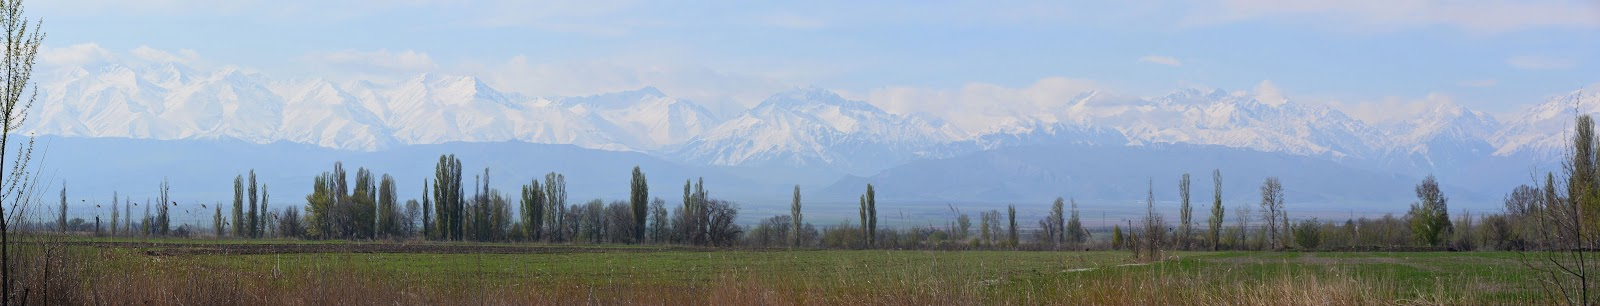 Panorama Tian Shan Mountains